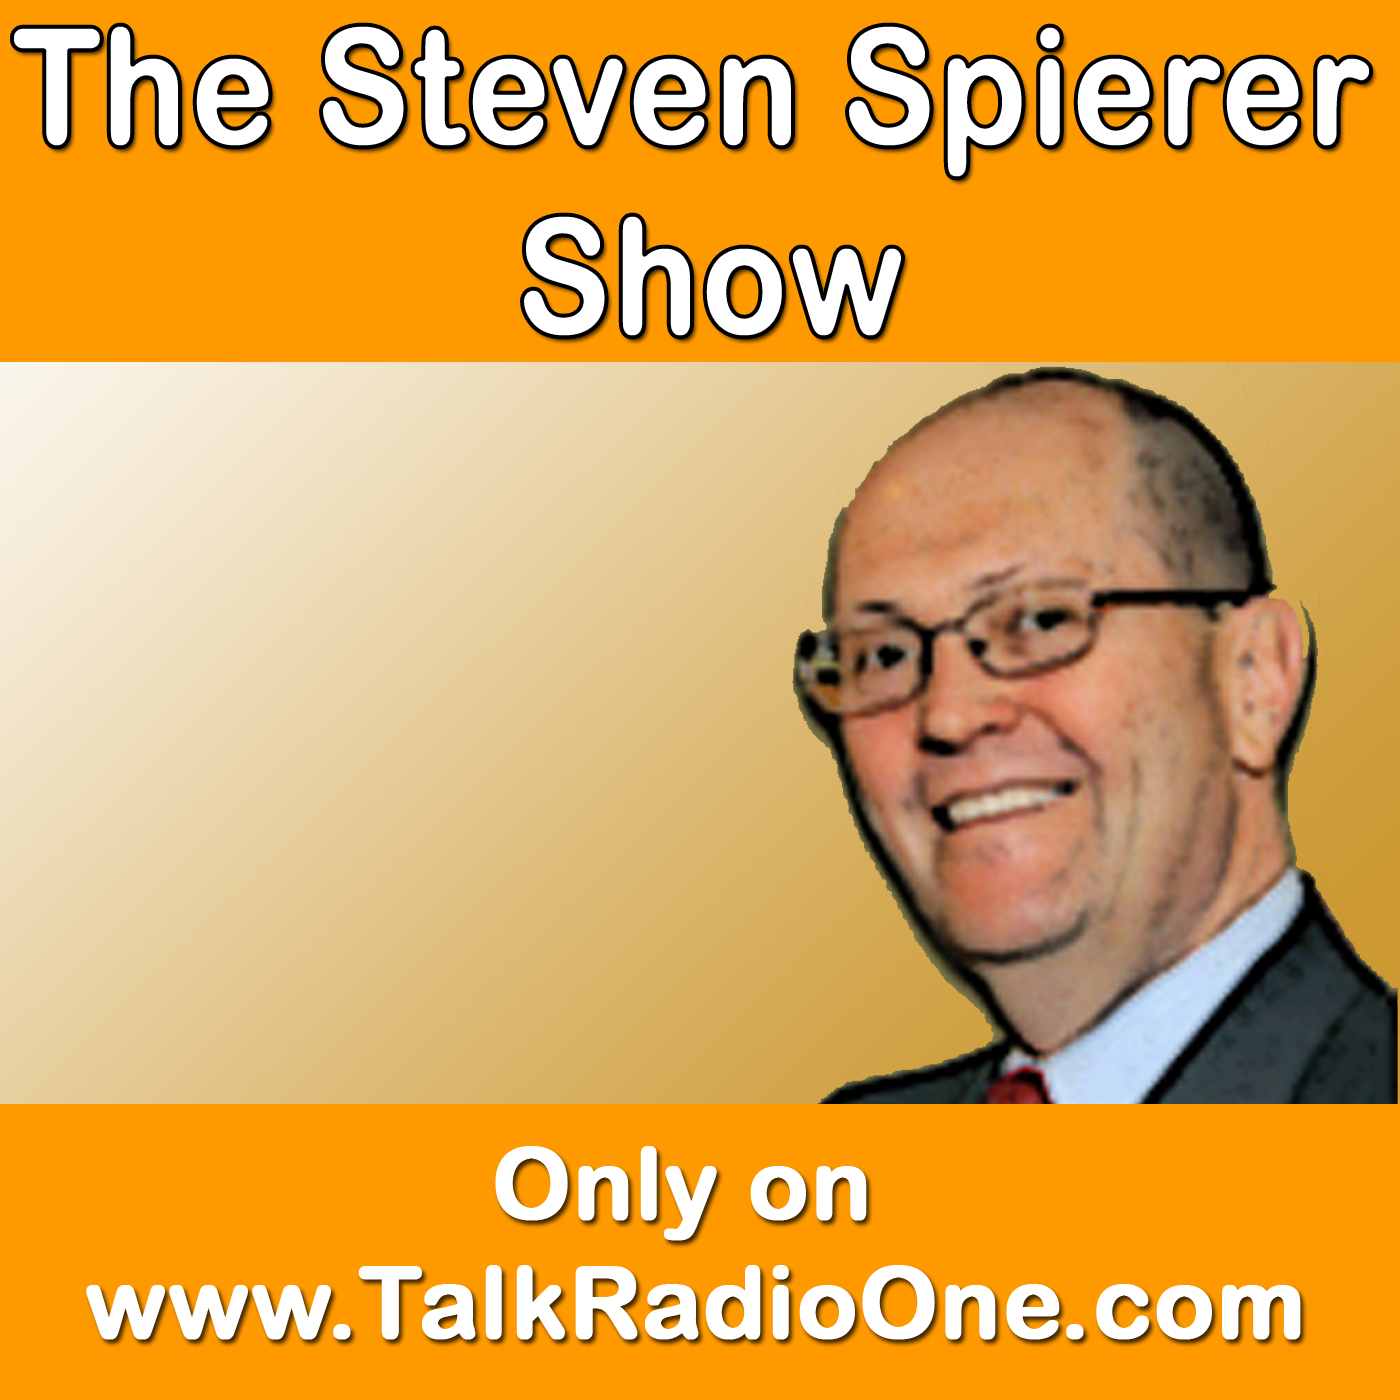 Steven Spierer Show – Talk Radio One